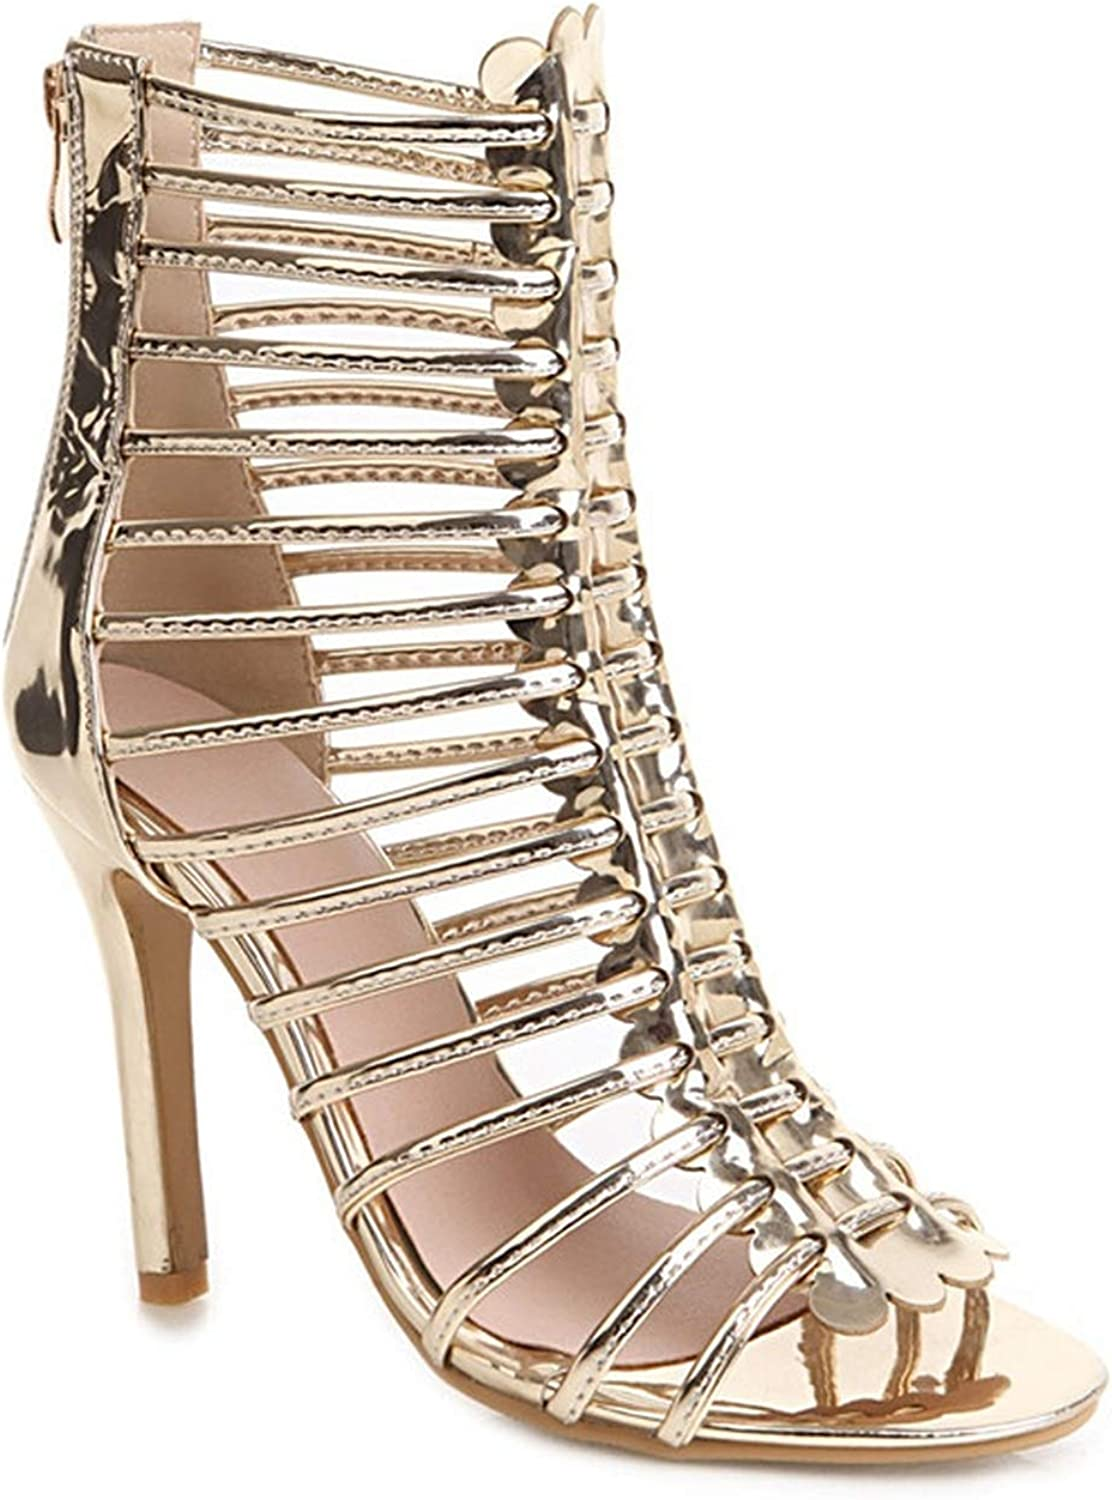 Surprise-Show Summer Women Sandals Sexy High Heels Cut-Outs Ankle Boots gold Silver Party Wedding shoes